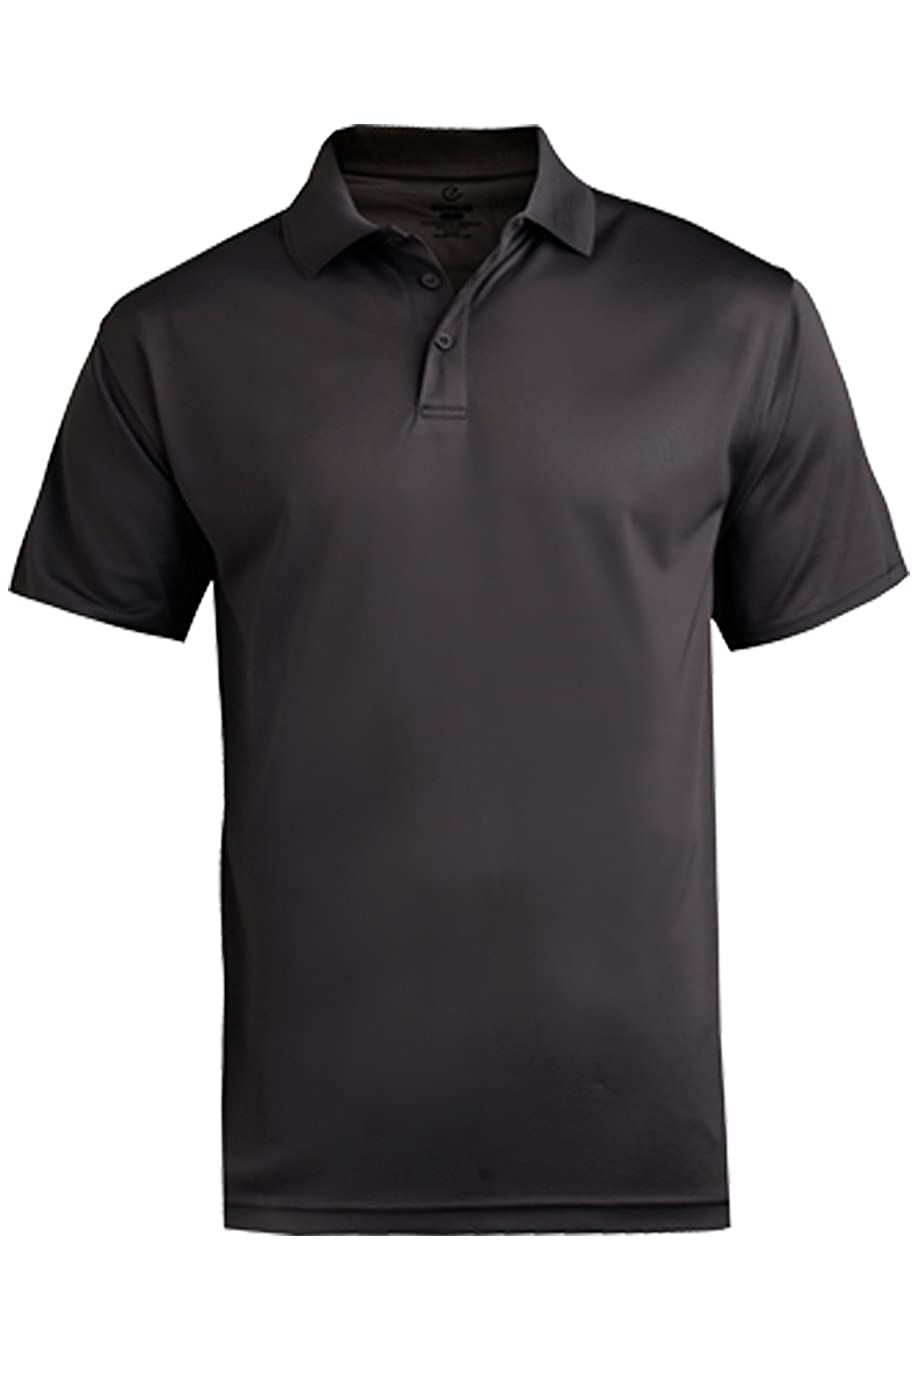 Edwards Garment Mens Antimicrobial Wrinkle Resistant Polo Shirt/_STEEL GREY/_3XL